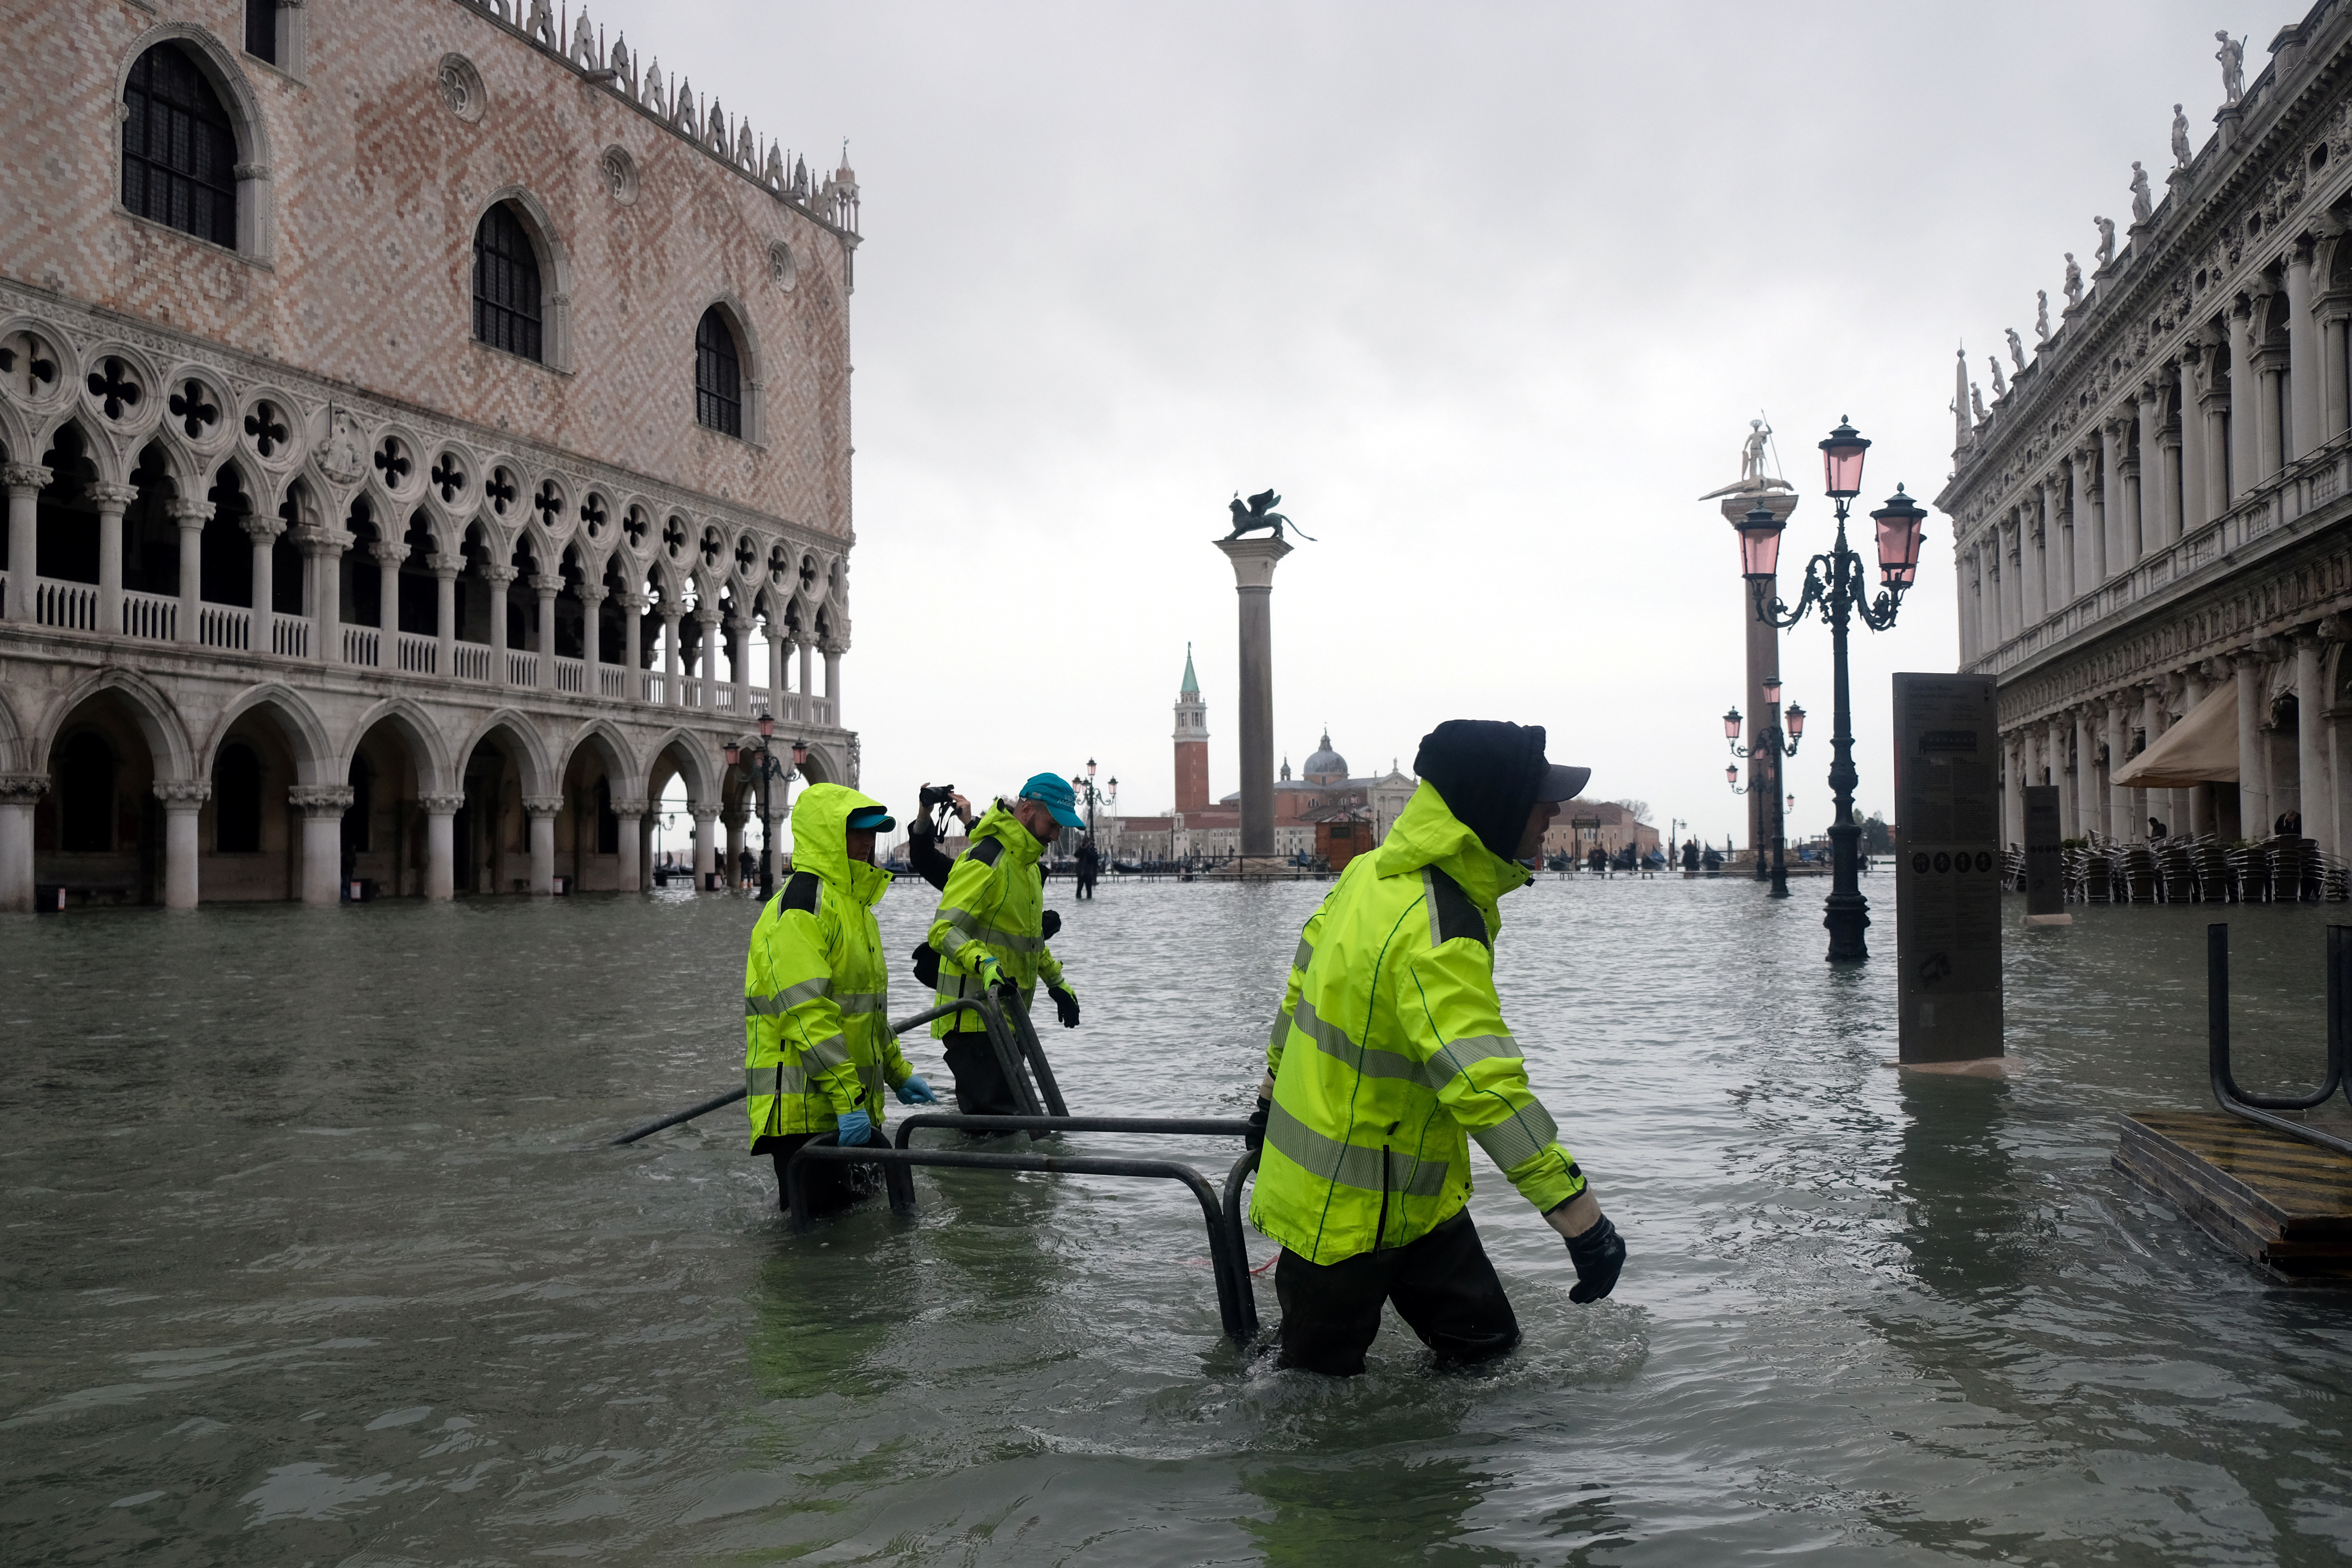 Workers wade through a flooded St. Mark's Square during a period of seasonal high water in Venice, Italy November 24, 2019. REUTERS/Manuel Silvestri - RC2KHD9H0AYY